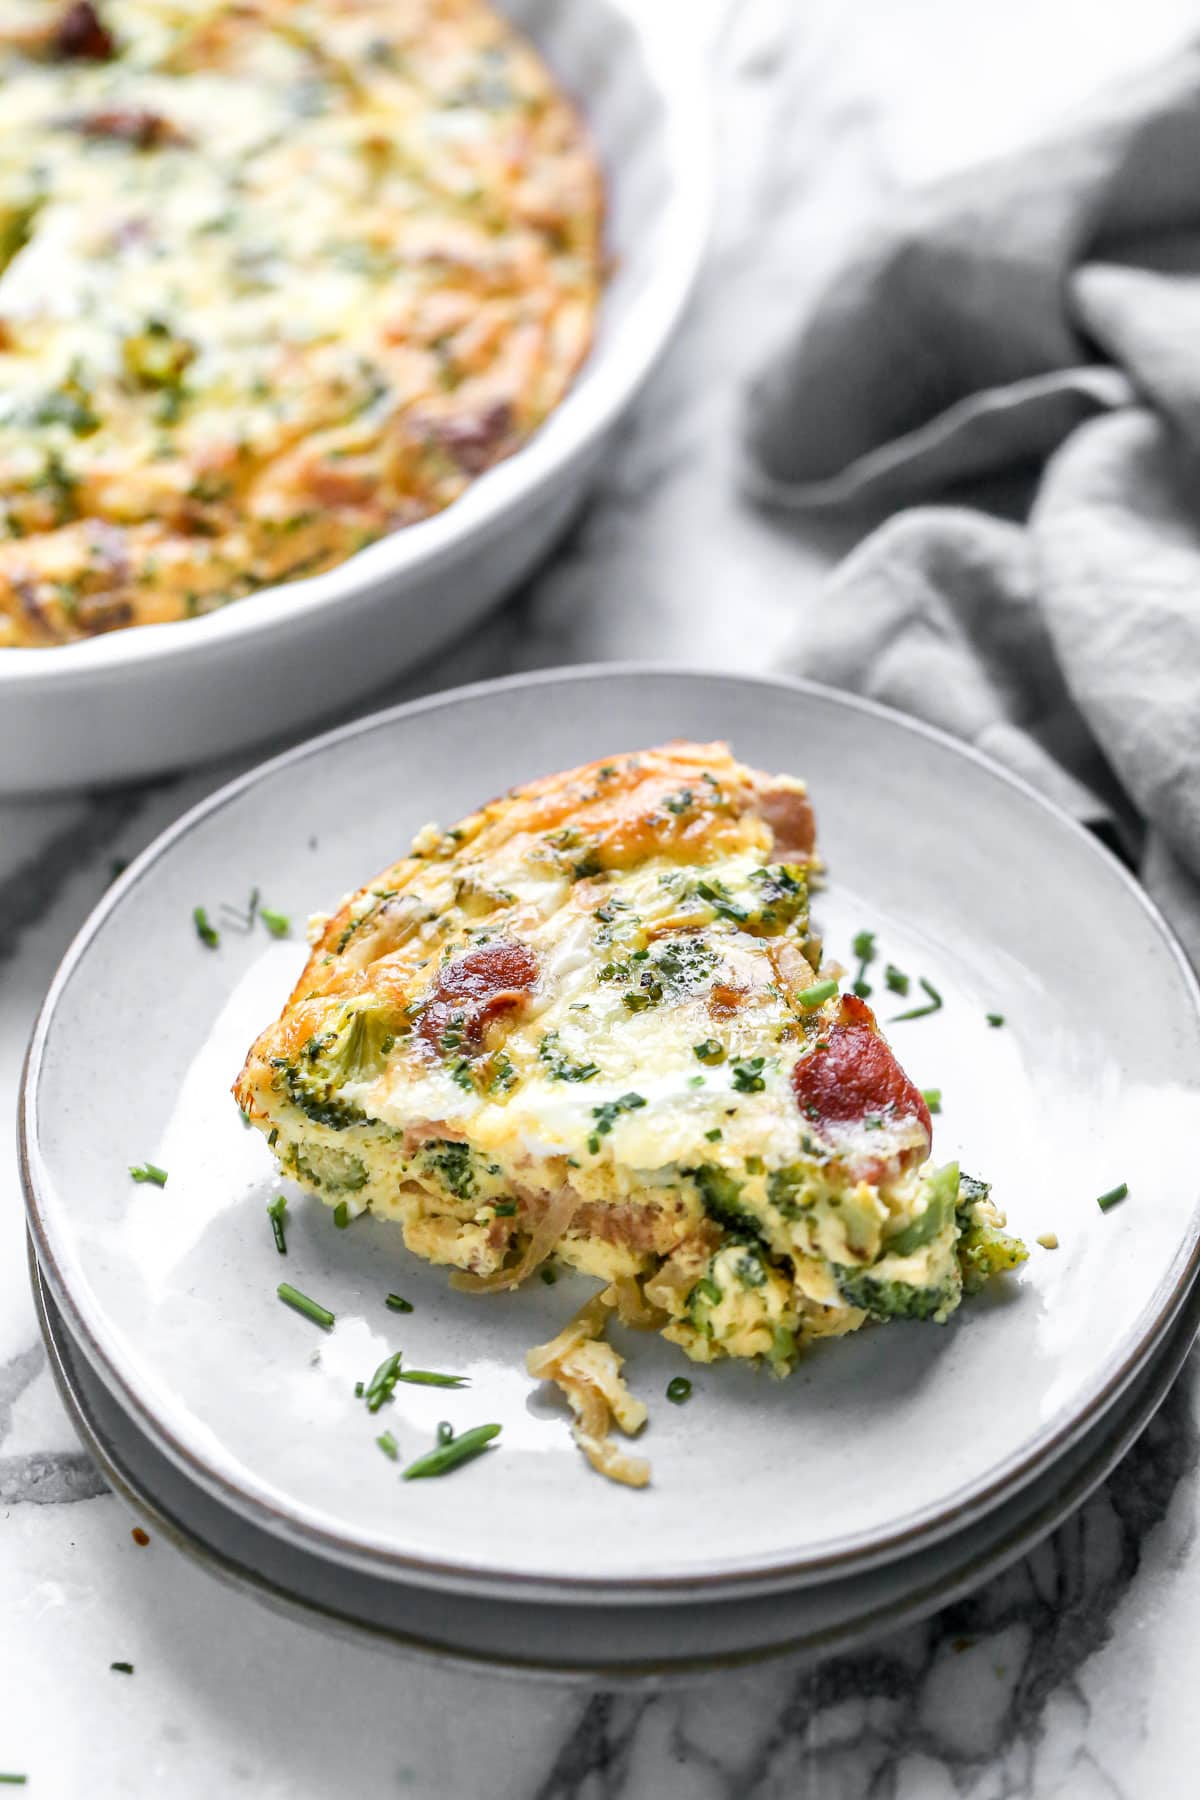 A slice of crustless quiche on a plate